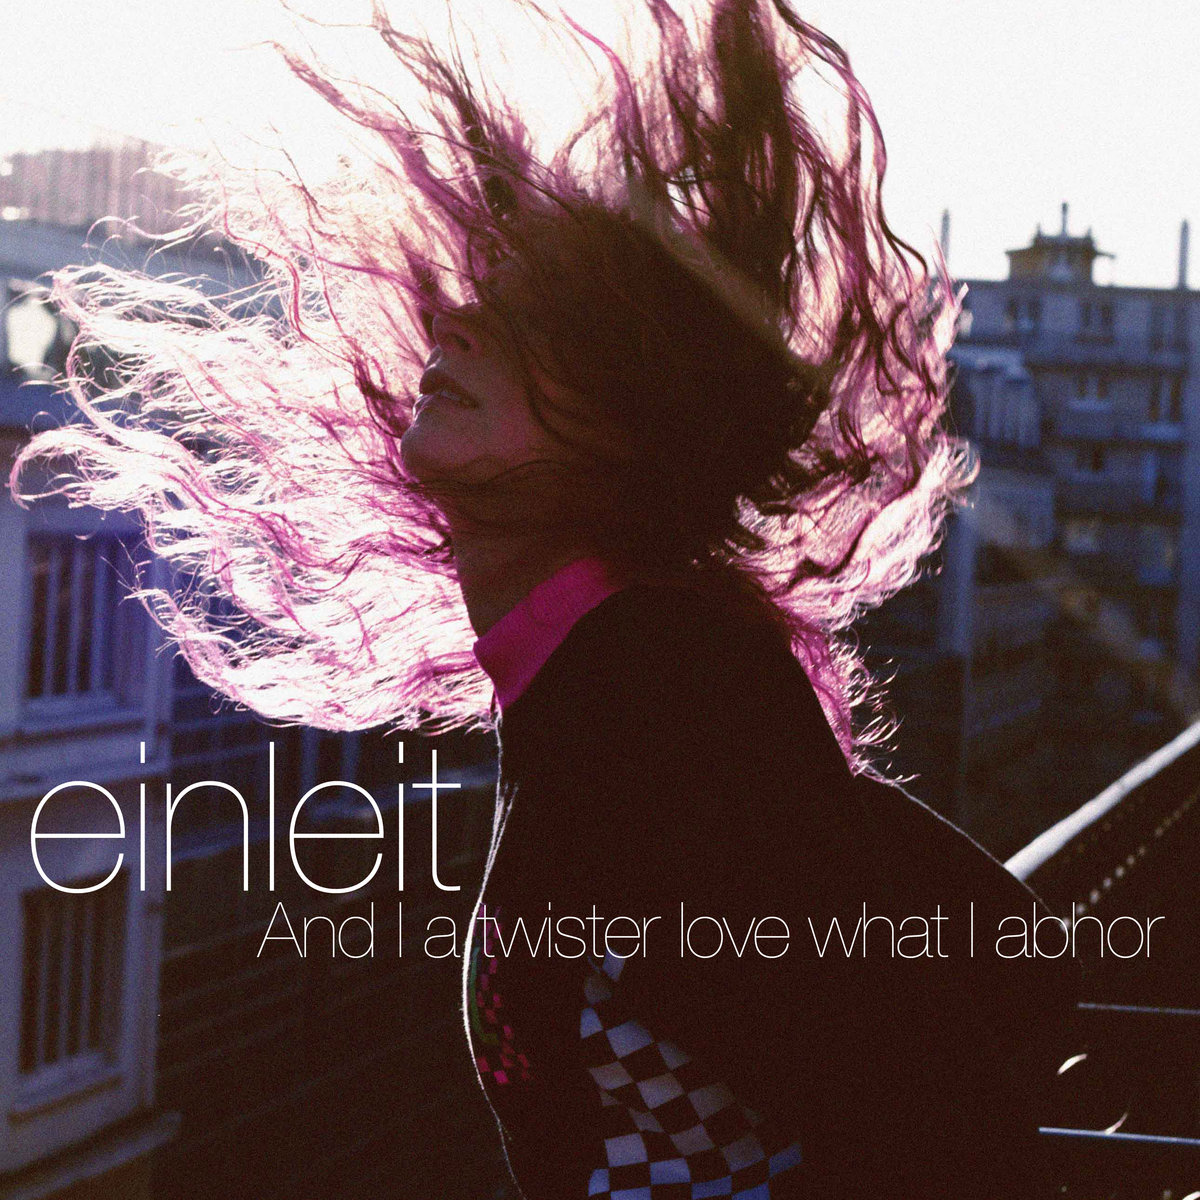 EP- And I a twister love what I abhor